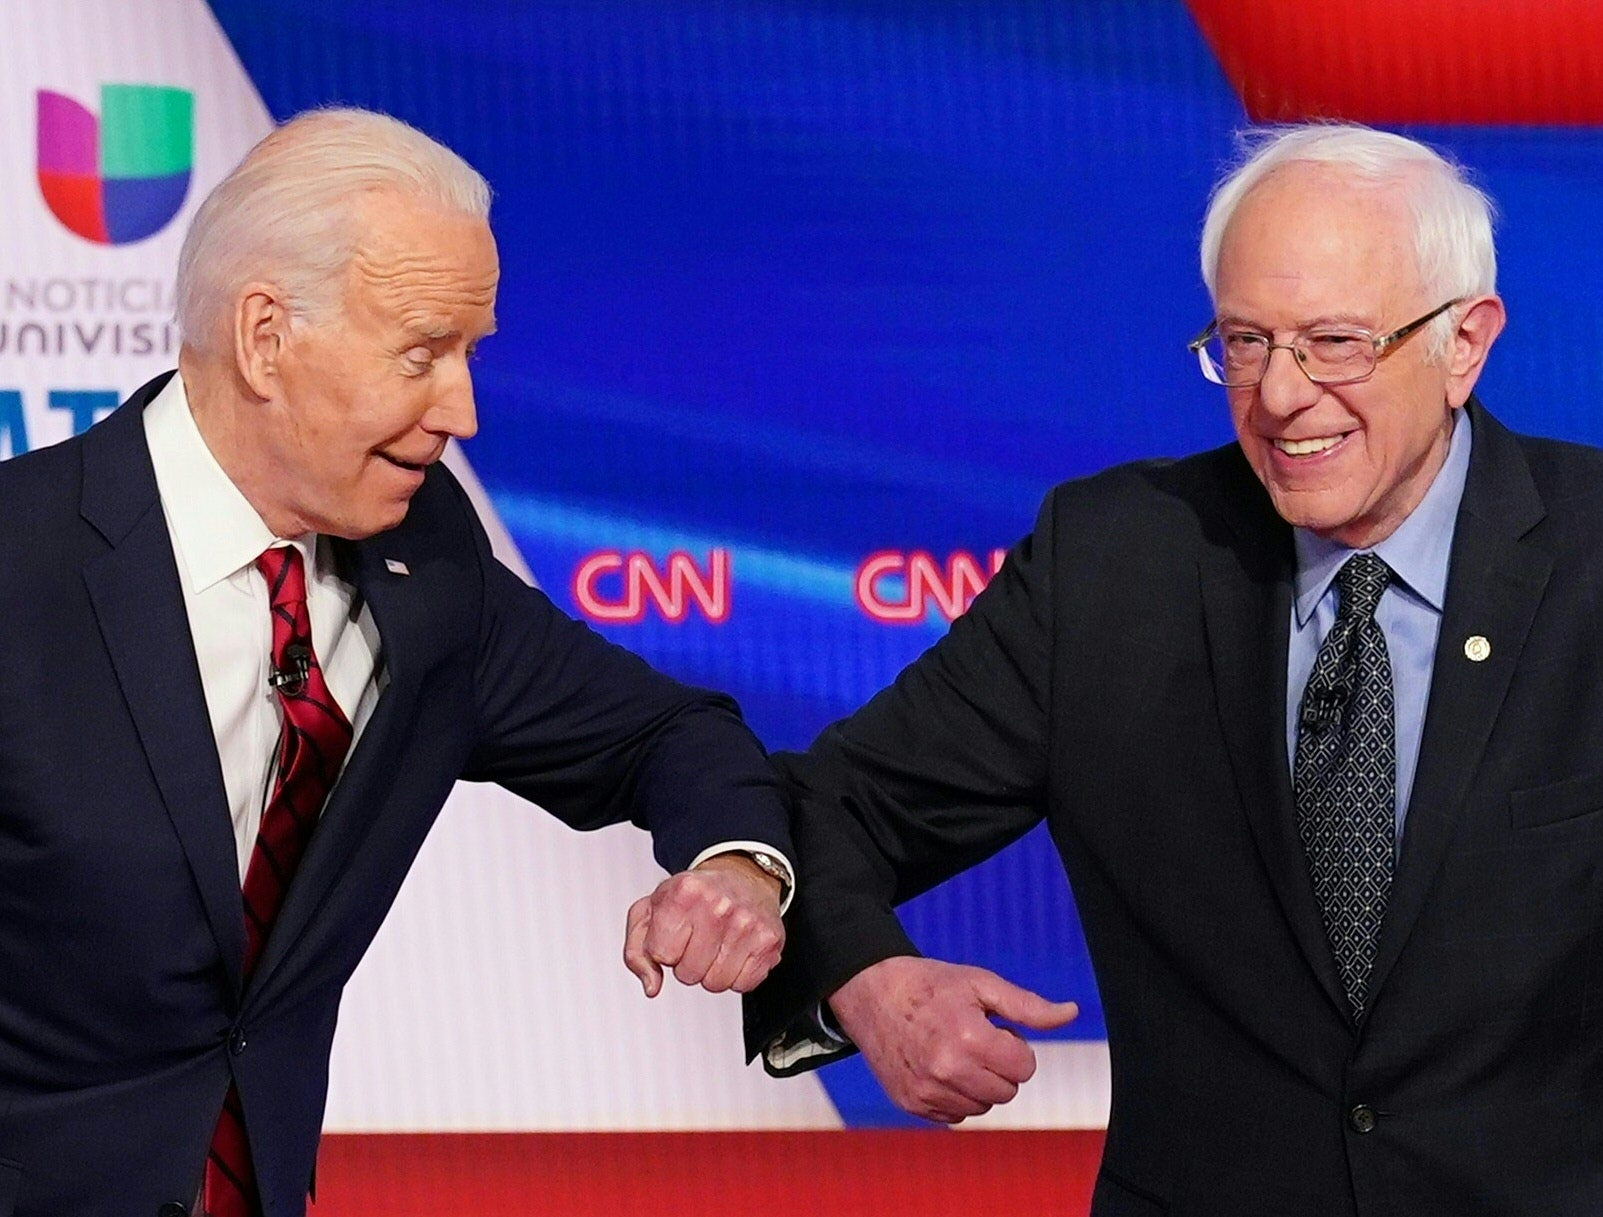 Biden and Sanders greet one another with elbow bumps during debate. The April debate is still TBD